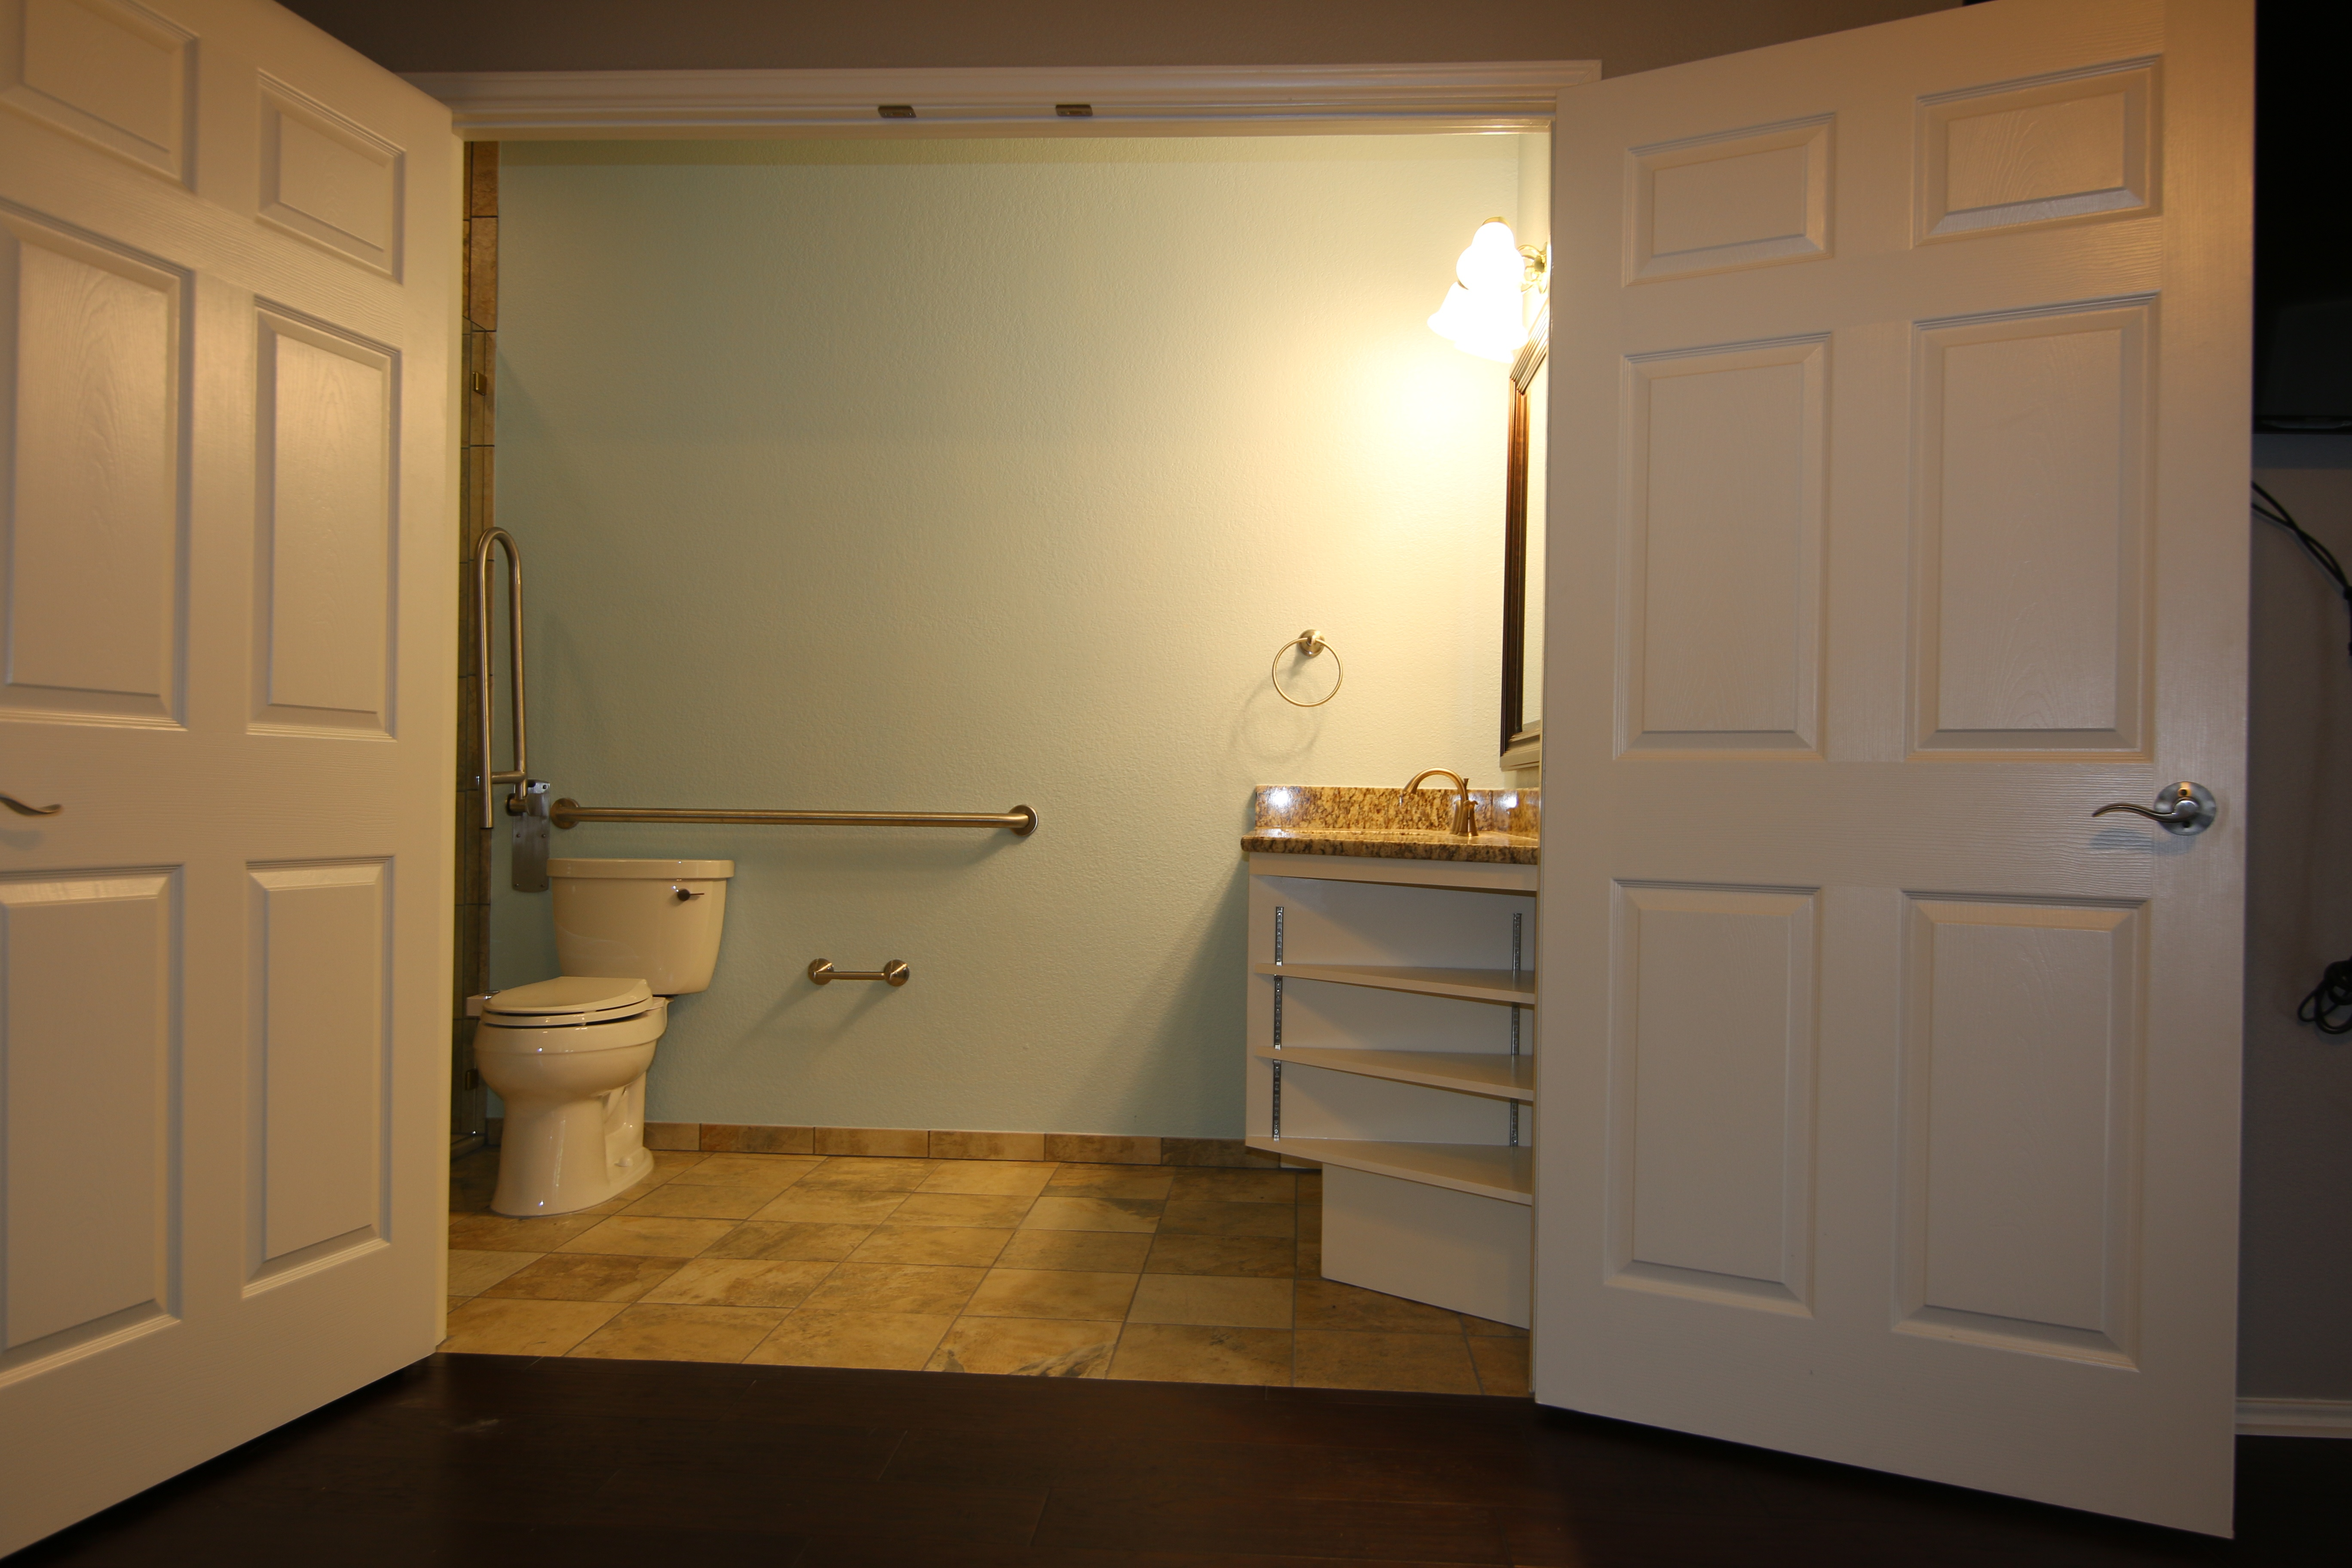 Wheelchair accessible home modifications in Austin, Texas